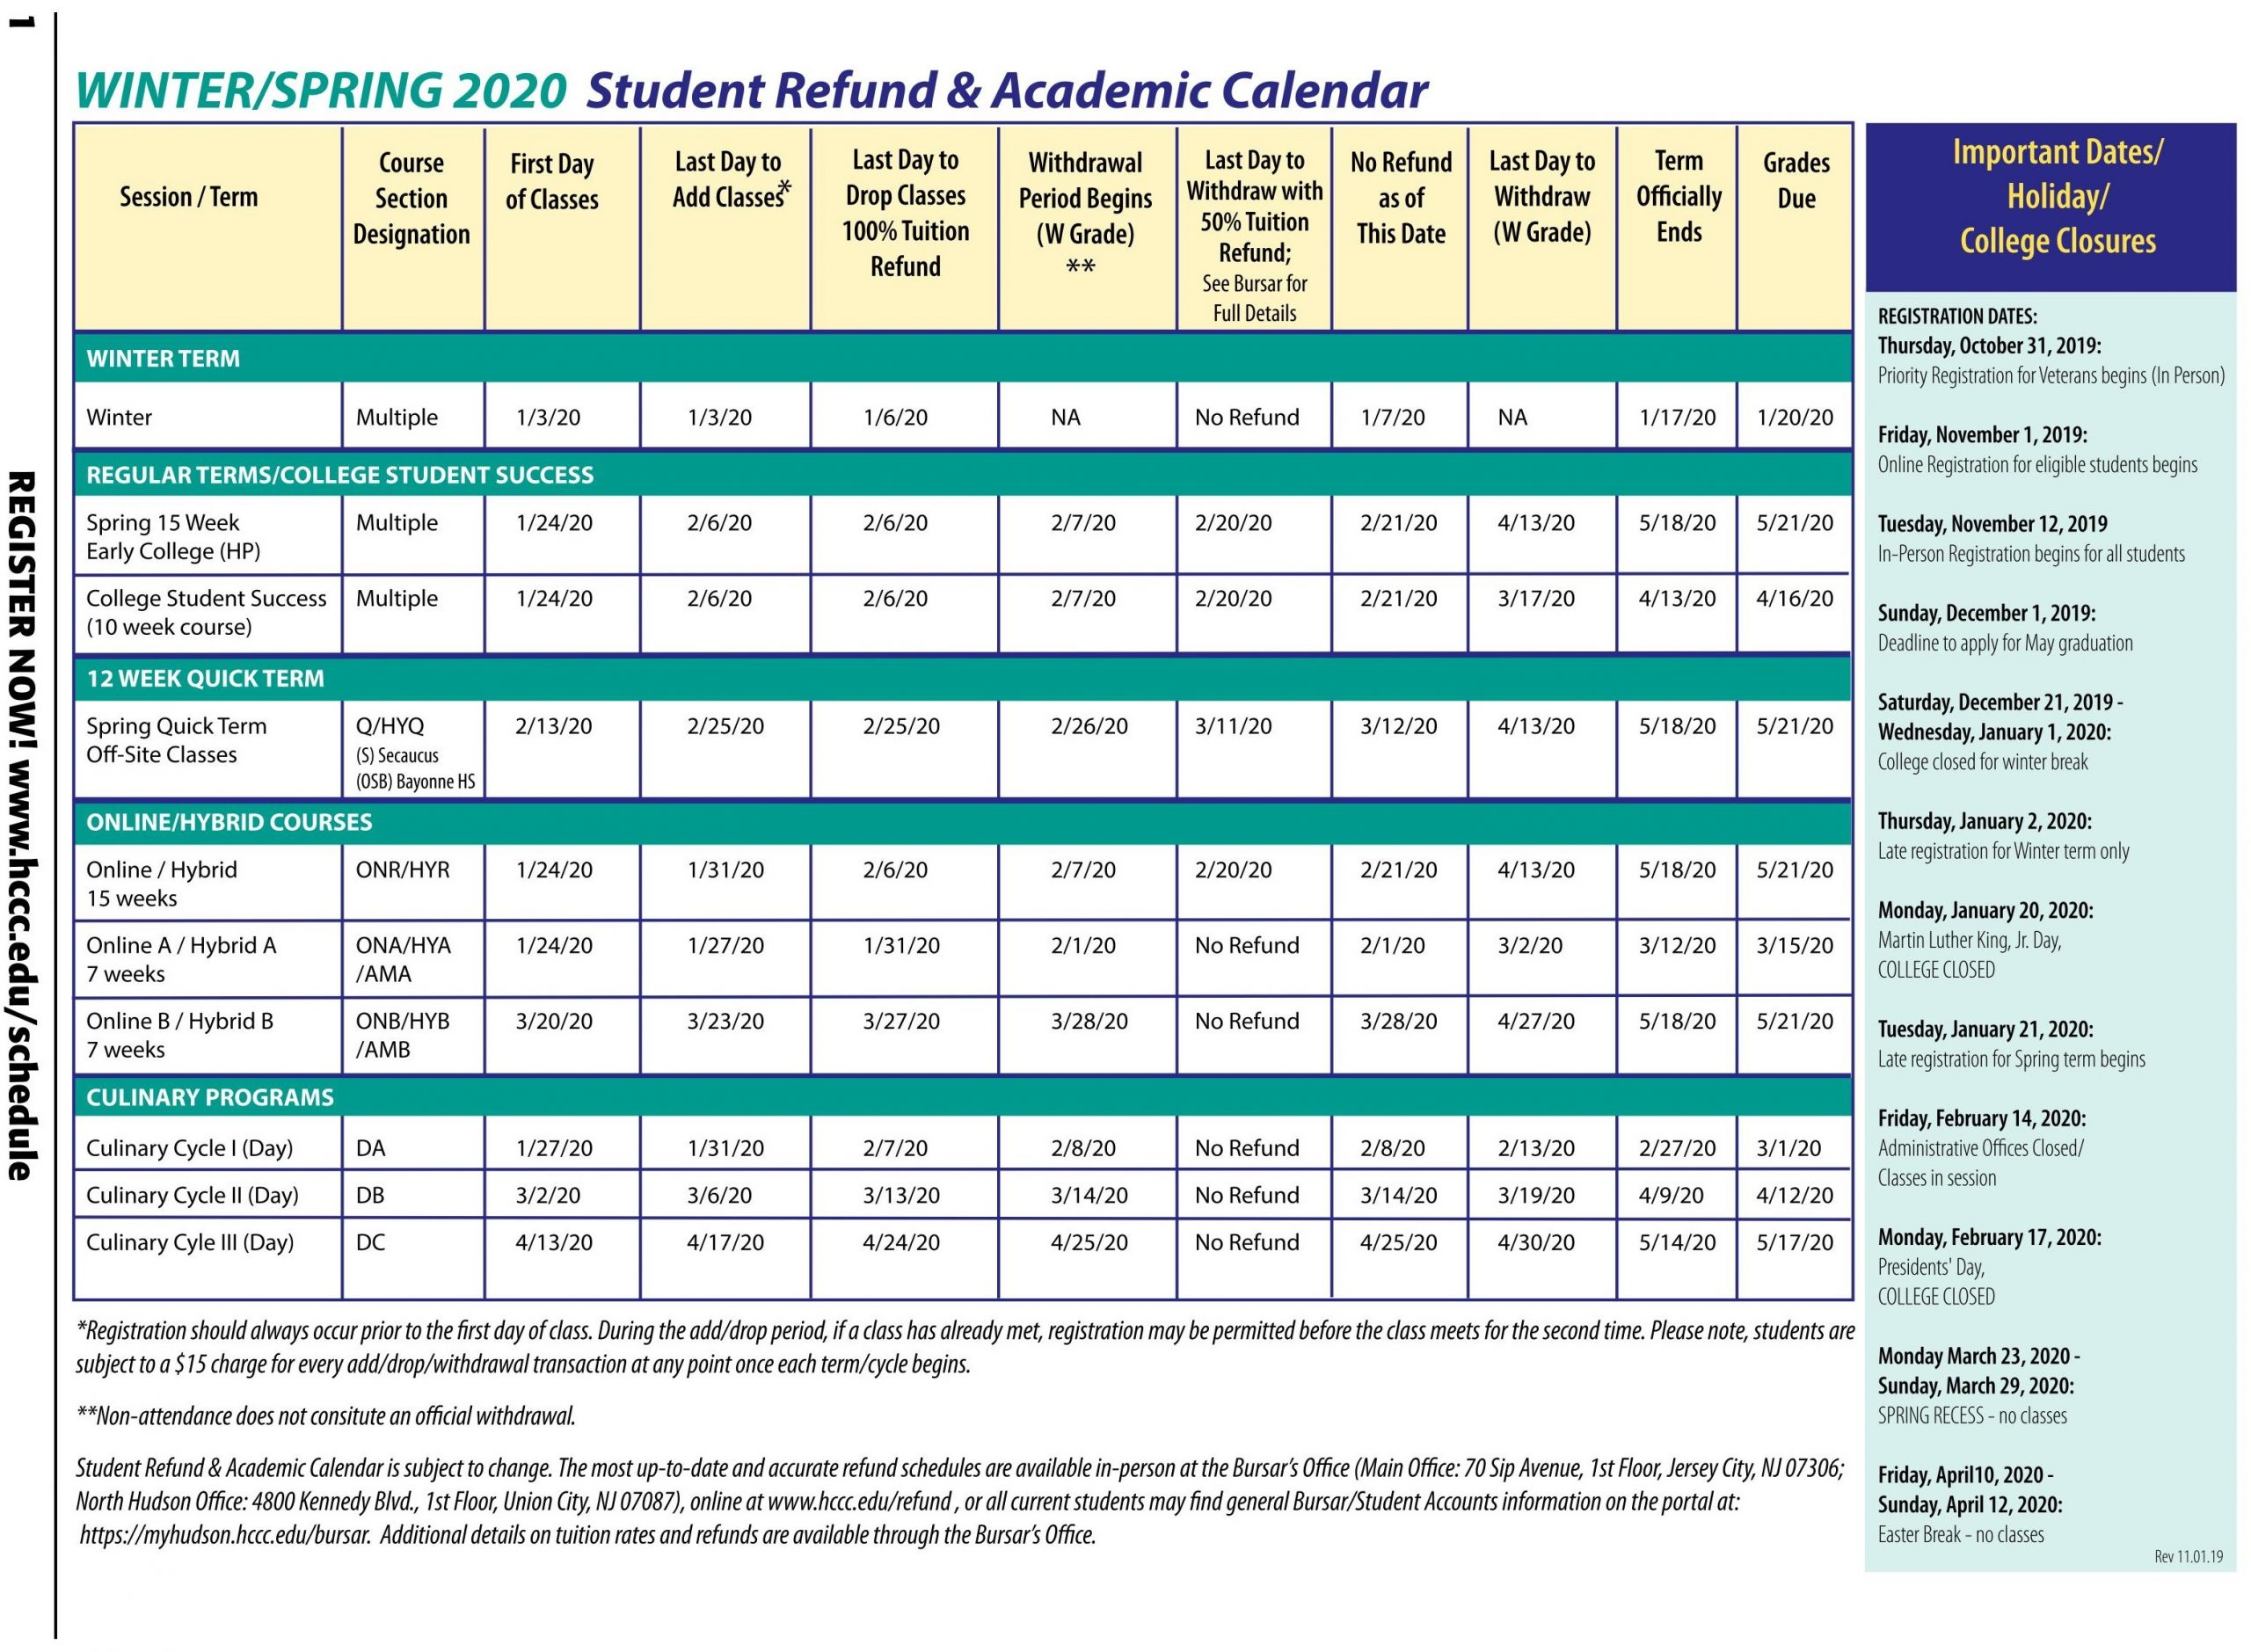 Delaware University Academic Calendar | Printable Calendar Throughout Uri Academic Calendar